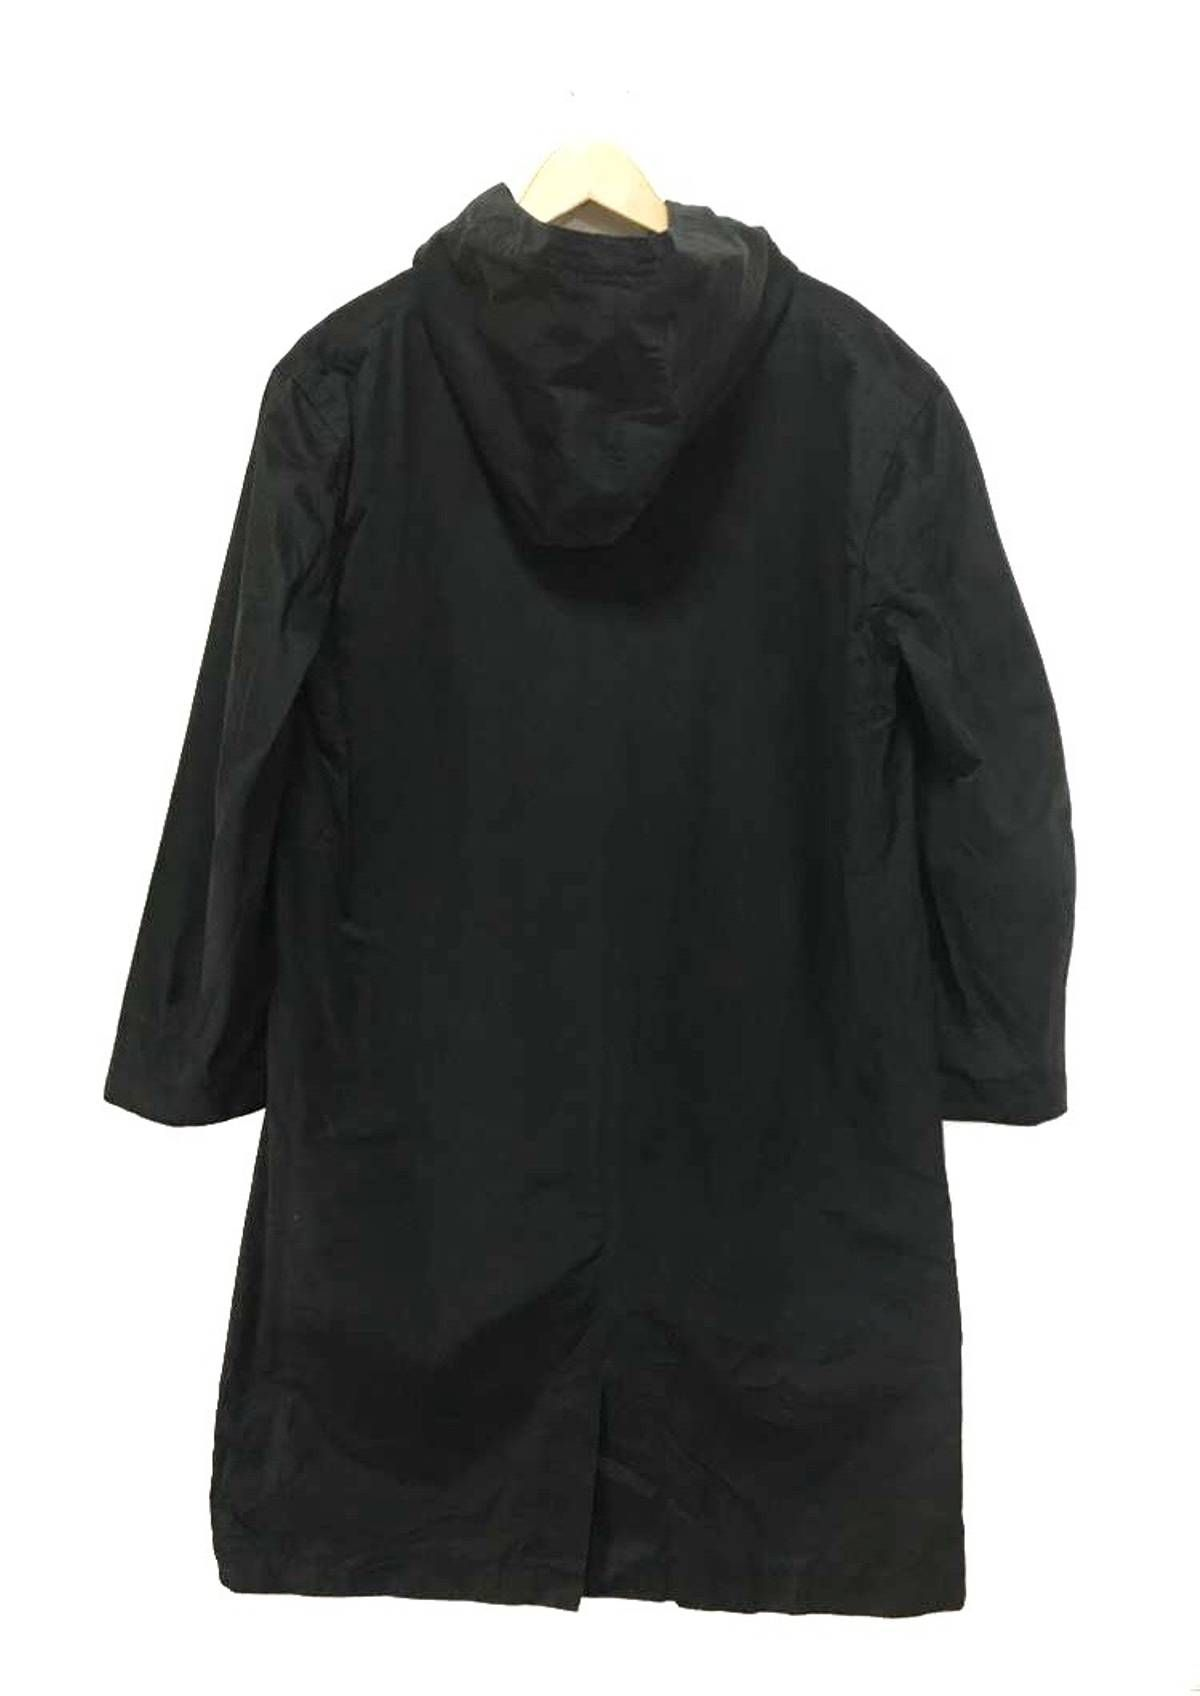 6219370e7a125 Yohji Yamamoto Trench Coat Y s For Men Hoodie By Yohji Yamamoto Oversized  Size xl - Heavy Coats for Sale - Grailed